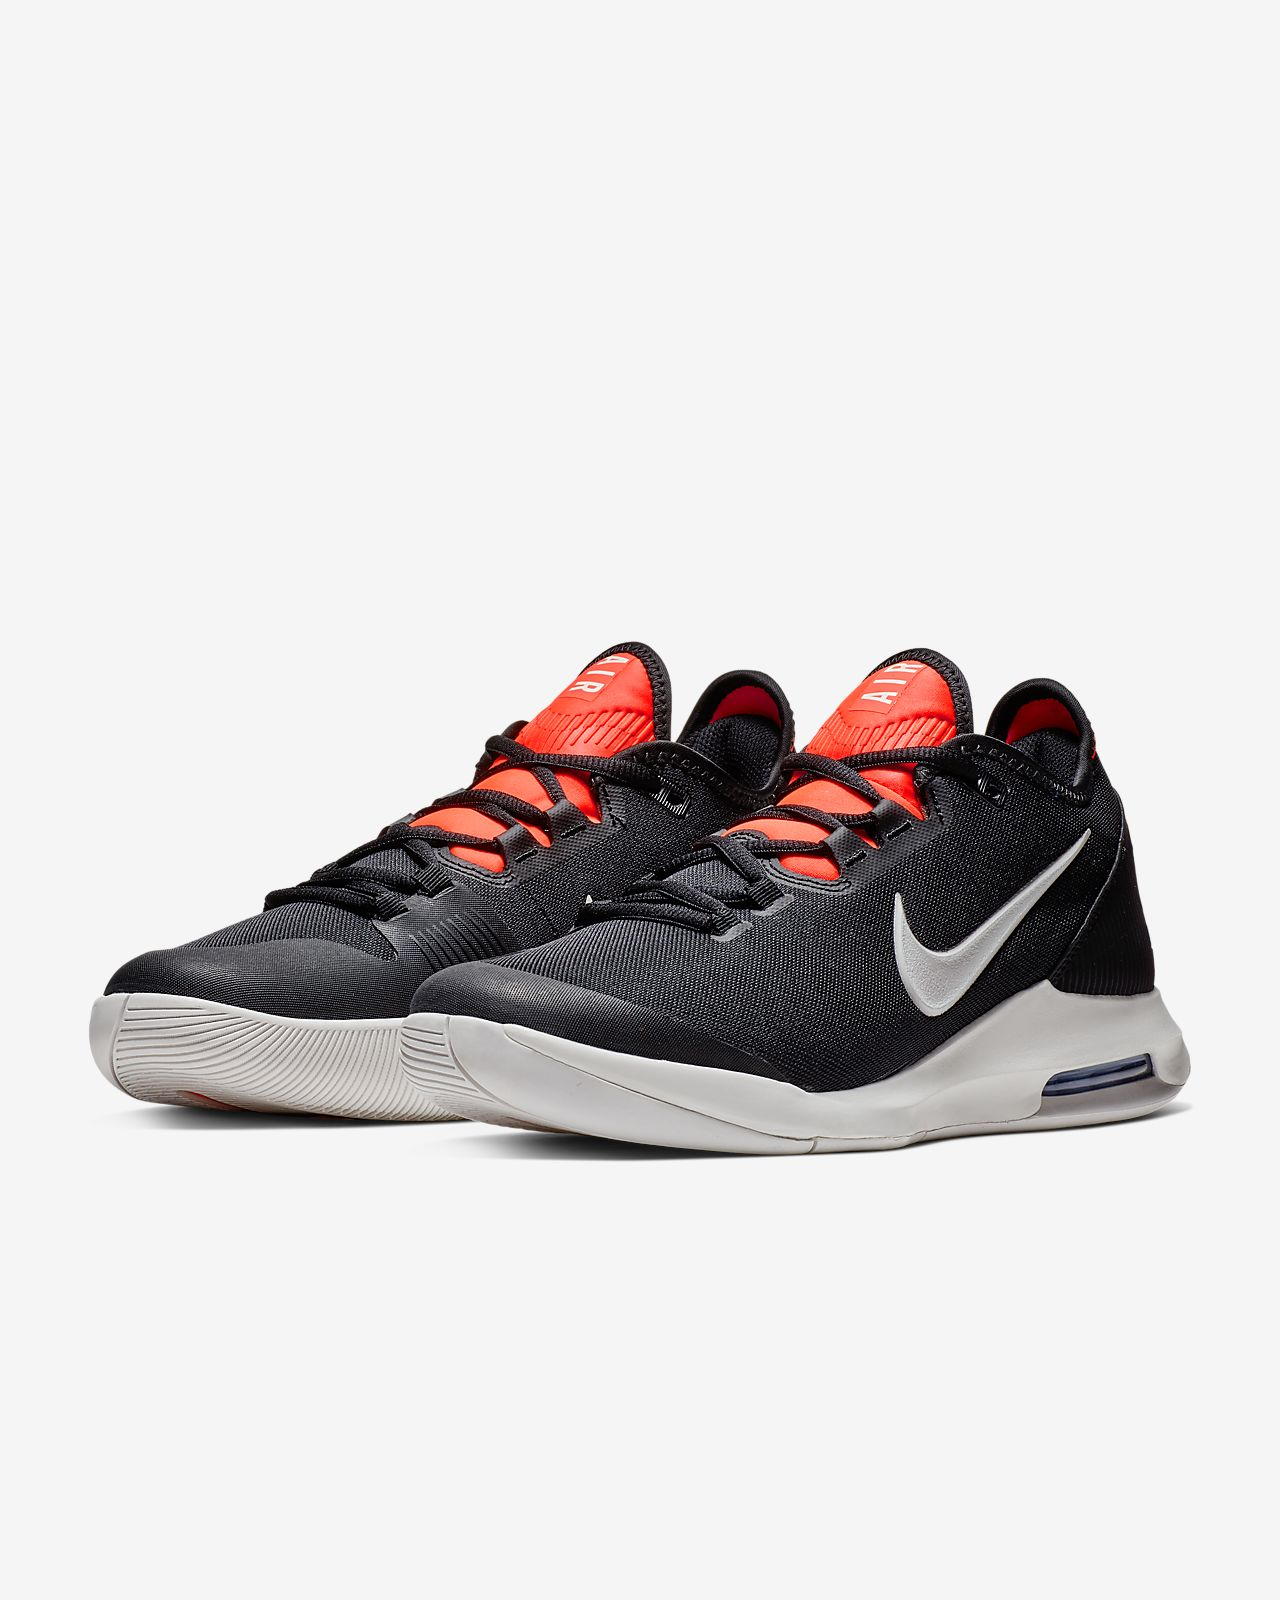 Nike Air Max Wildcard BlackWhiteCrimson Men's Shoe